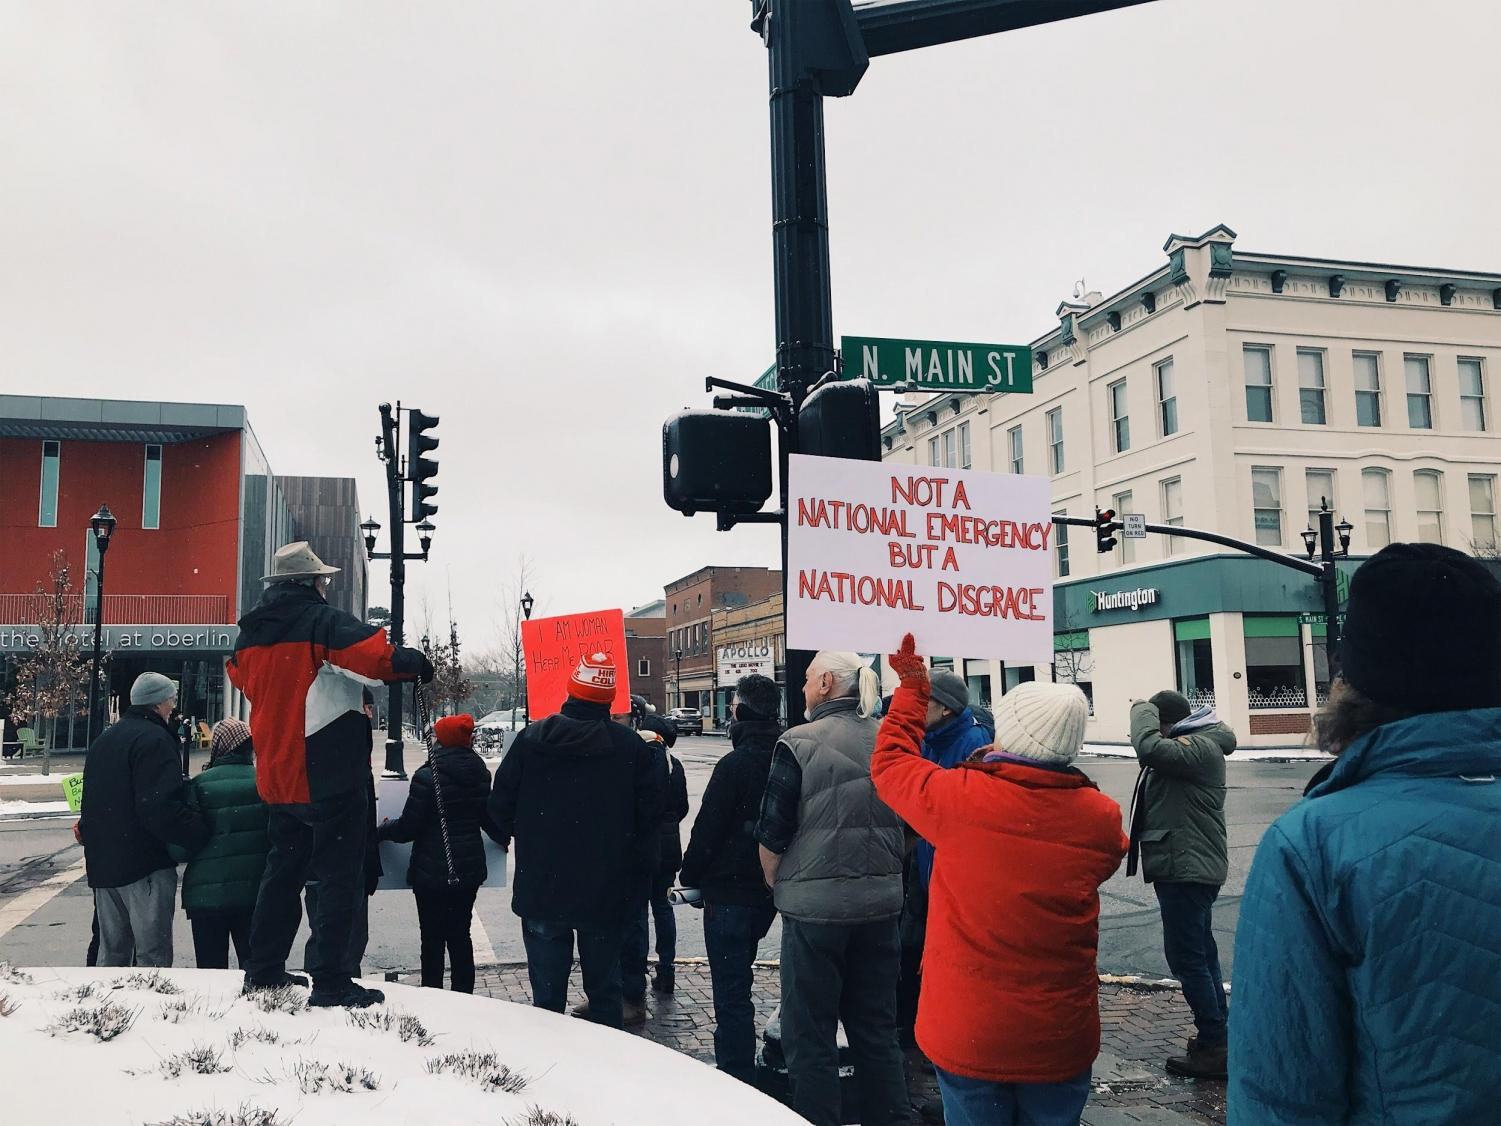 Protesters organized in downtown Oberlin on Monday to protest President Trump's declaration of a national emergency.